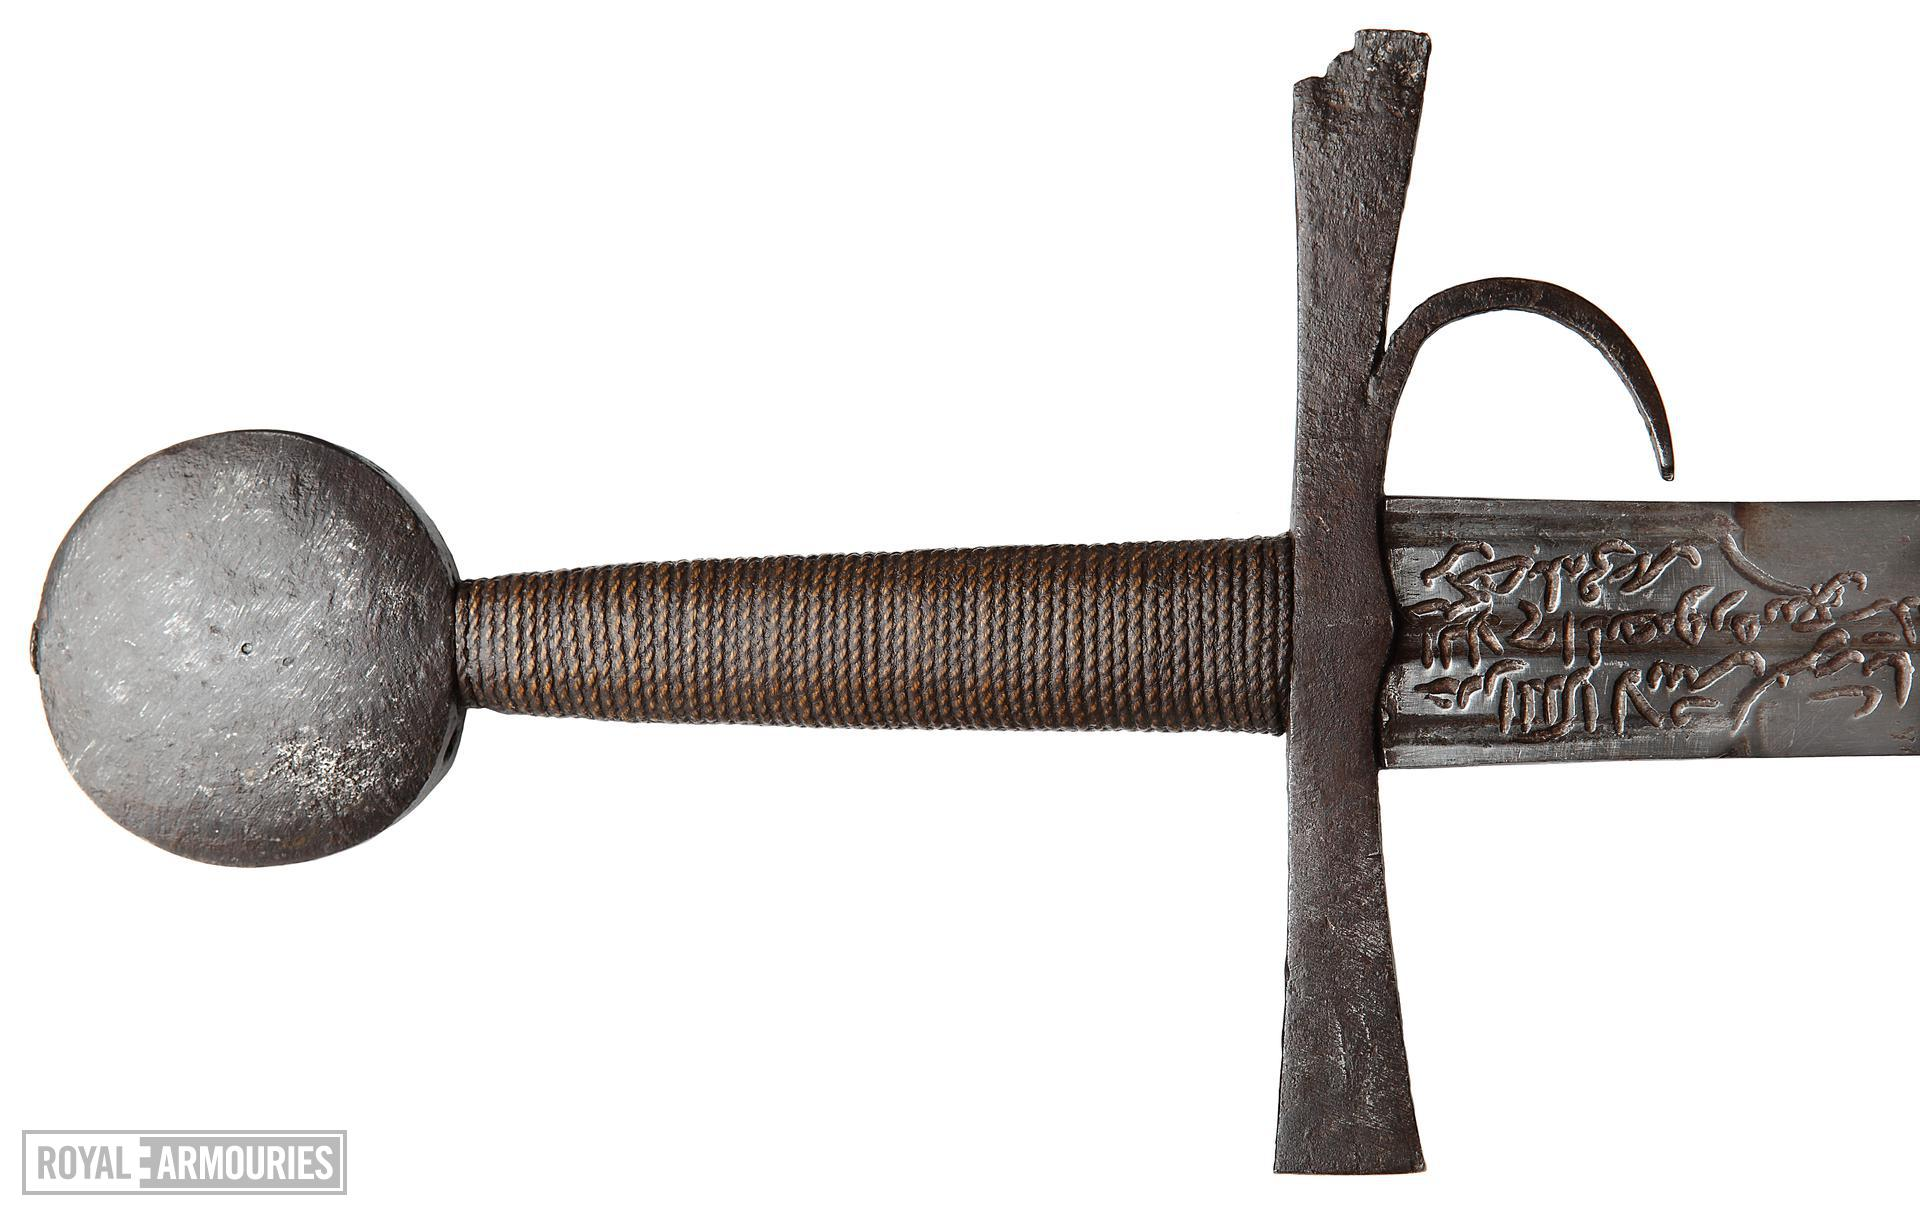 Sword. European, probably Italian, late 14th or early 15th century. The hilt with a finger guard and marked with the date 1432. Sword, blade Oakeshott Type XIX; pommel Oakeshott Type G; cross-guard Oakeshott Type 5